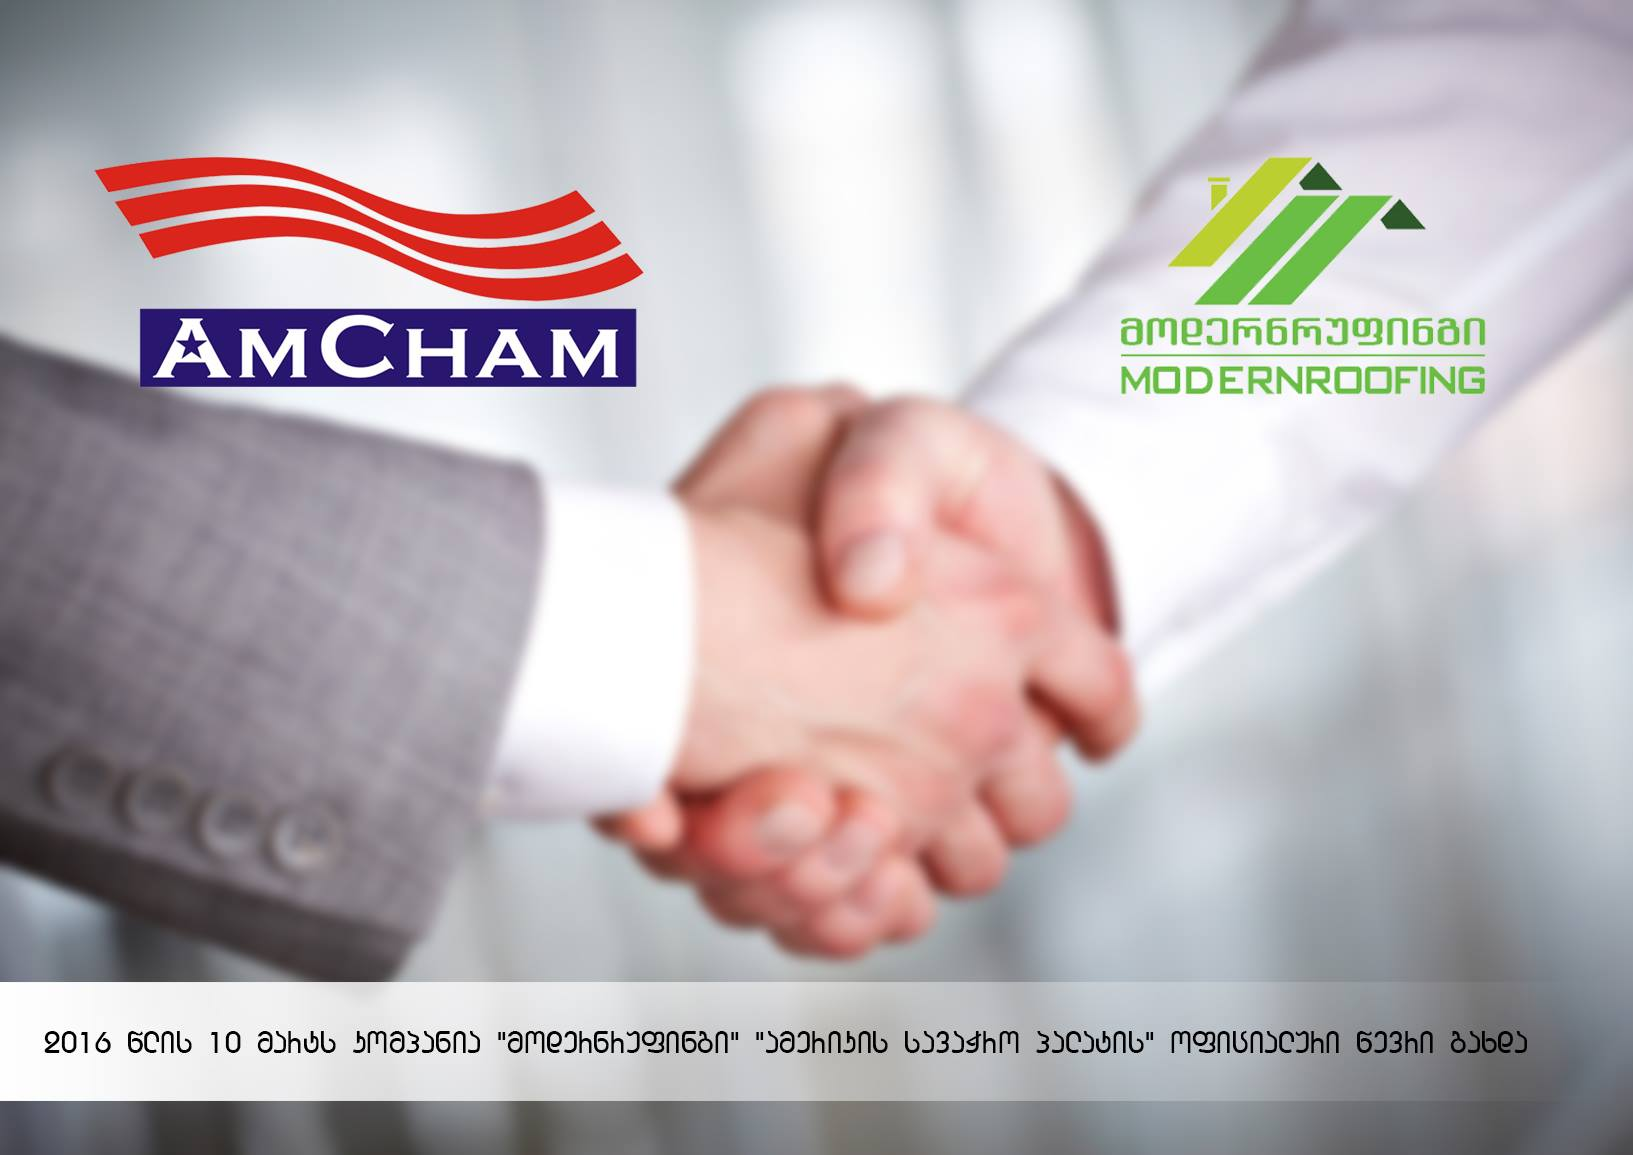 We are a member of AMCHAM